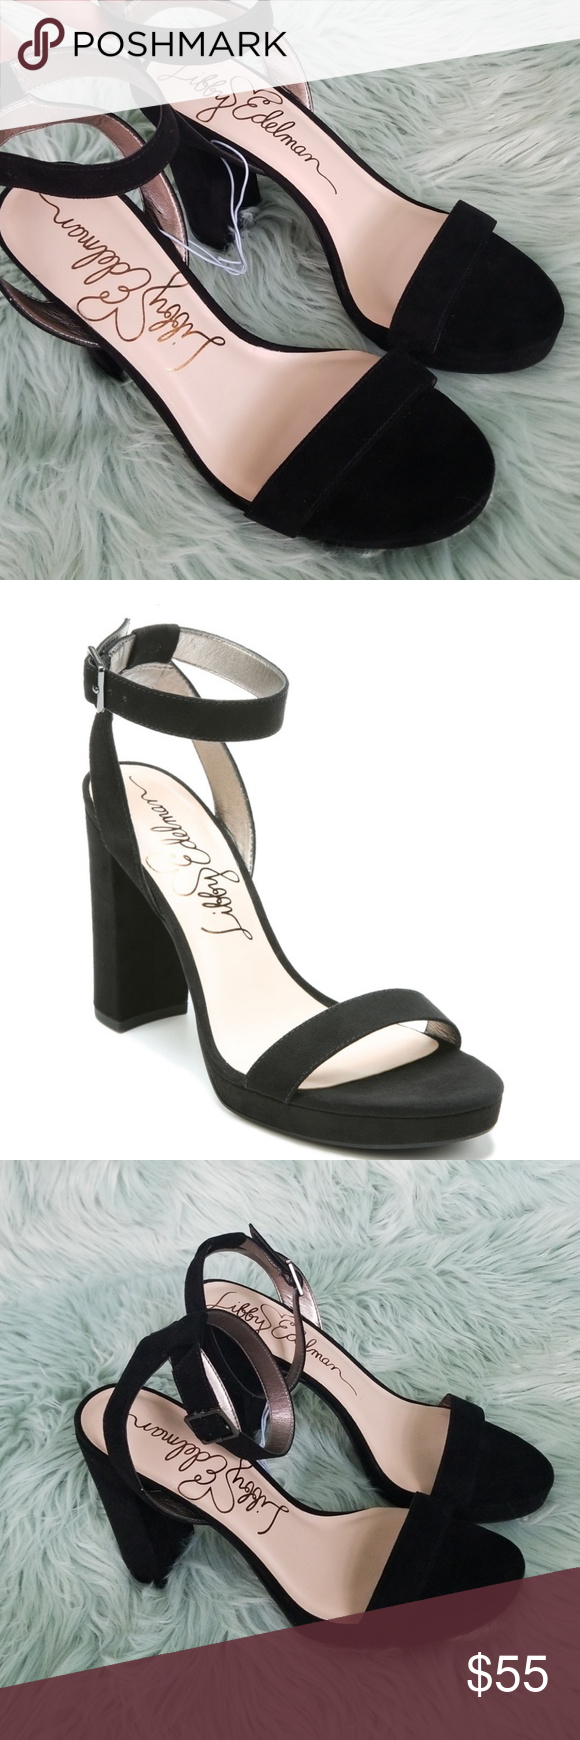 3c73d27532daf2 Libby Edelman Strap High Heels New Beautiful Libby Edelman black heels. A  soft velvet texture with an ankle strap and strap that goes over the foot  and a 4 ...